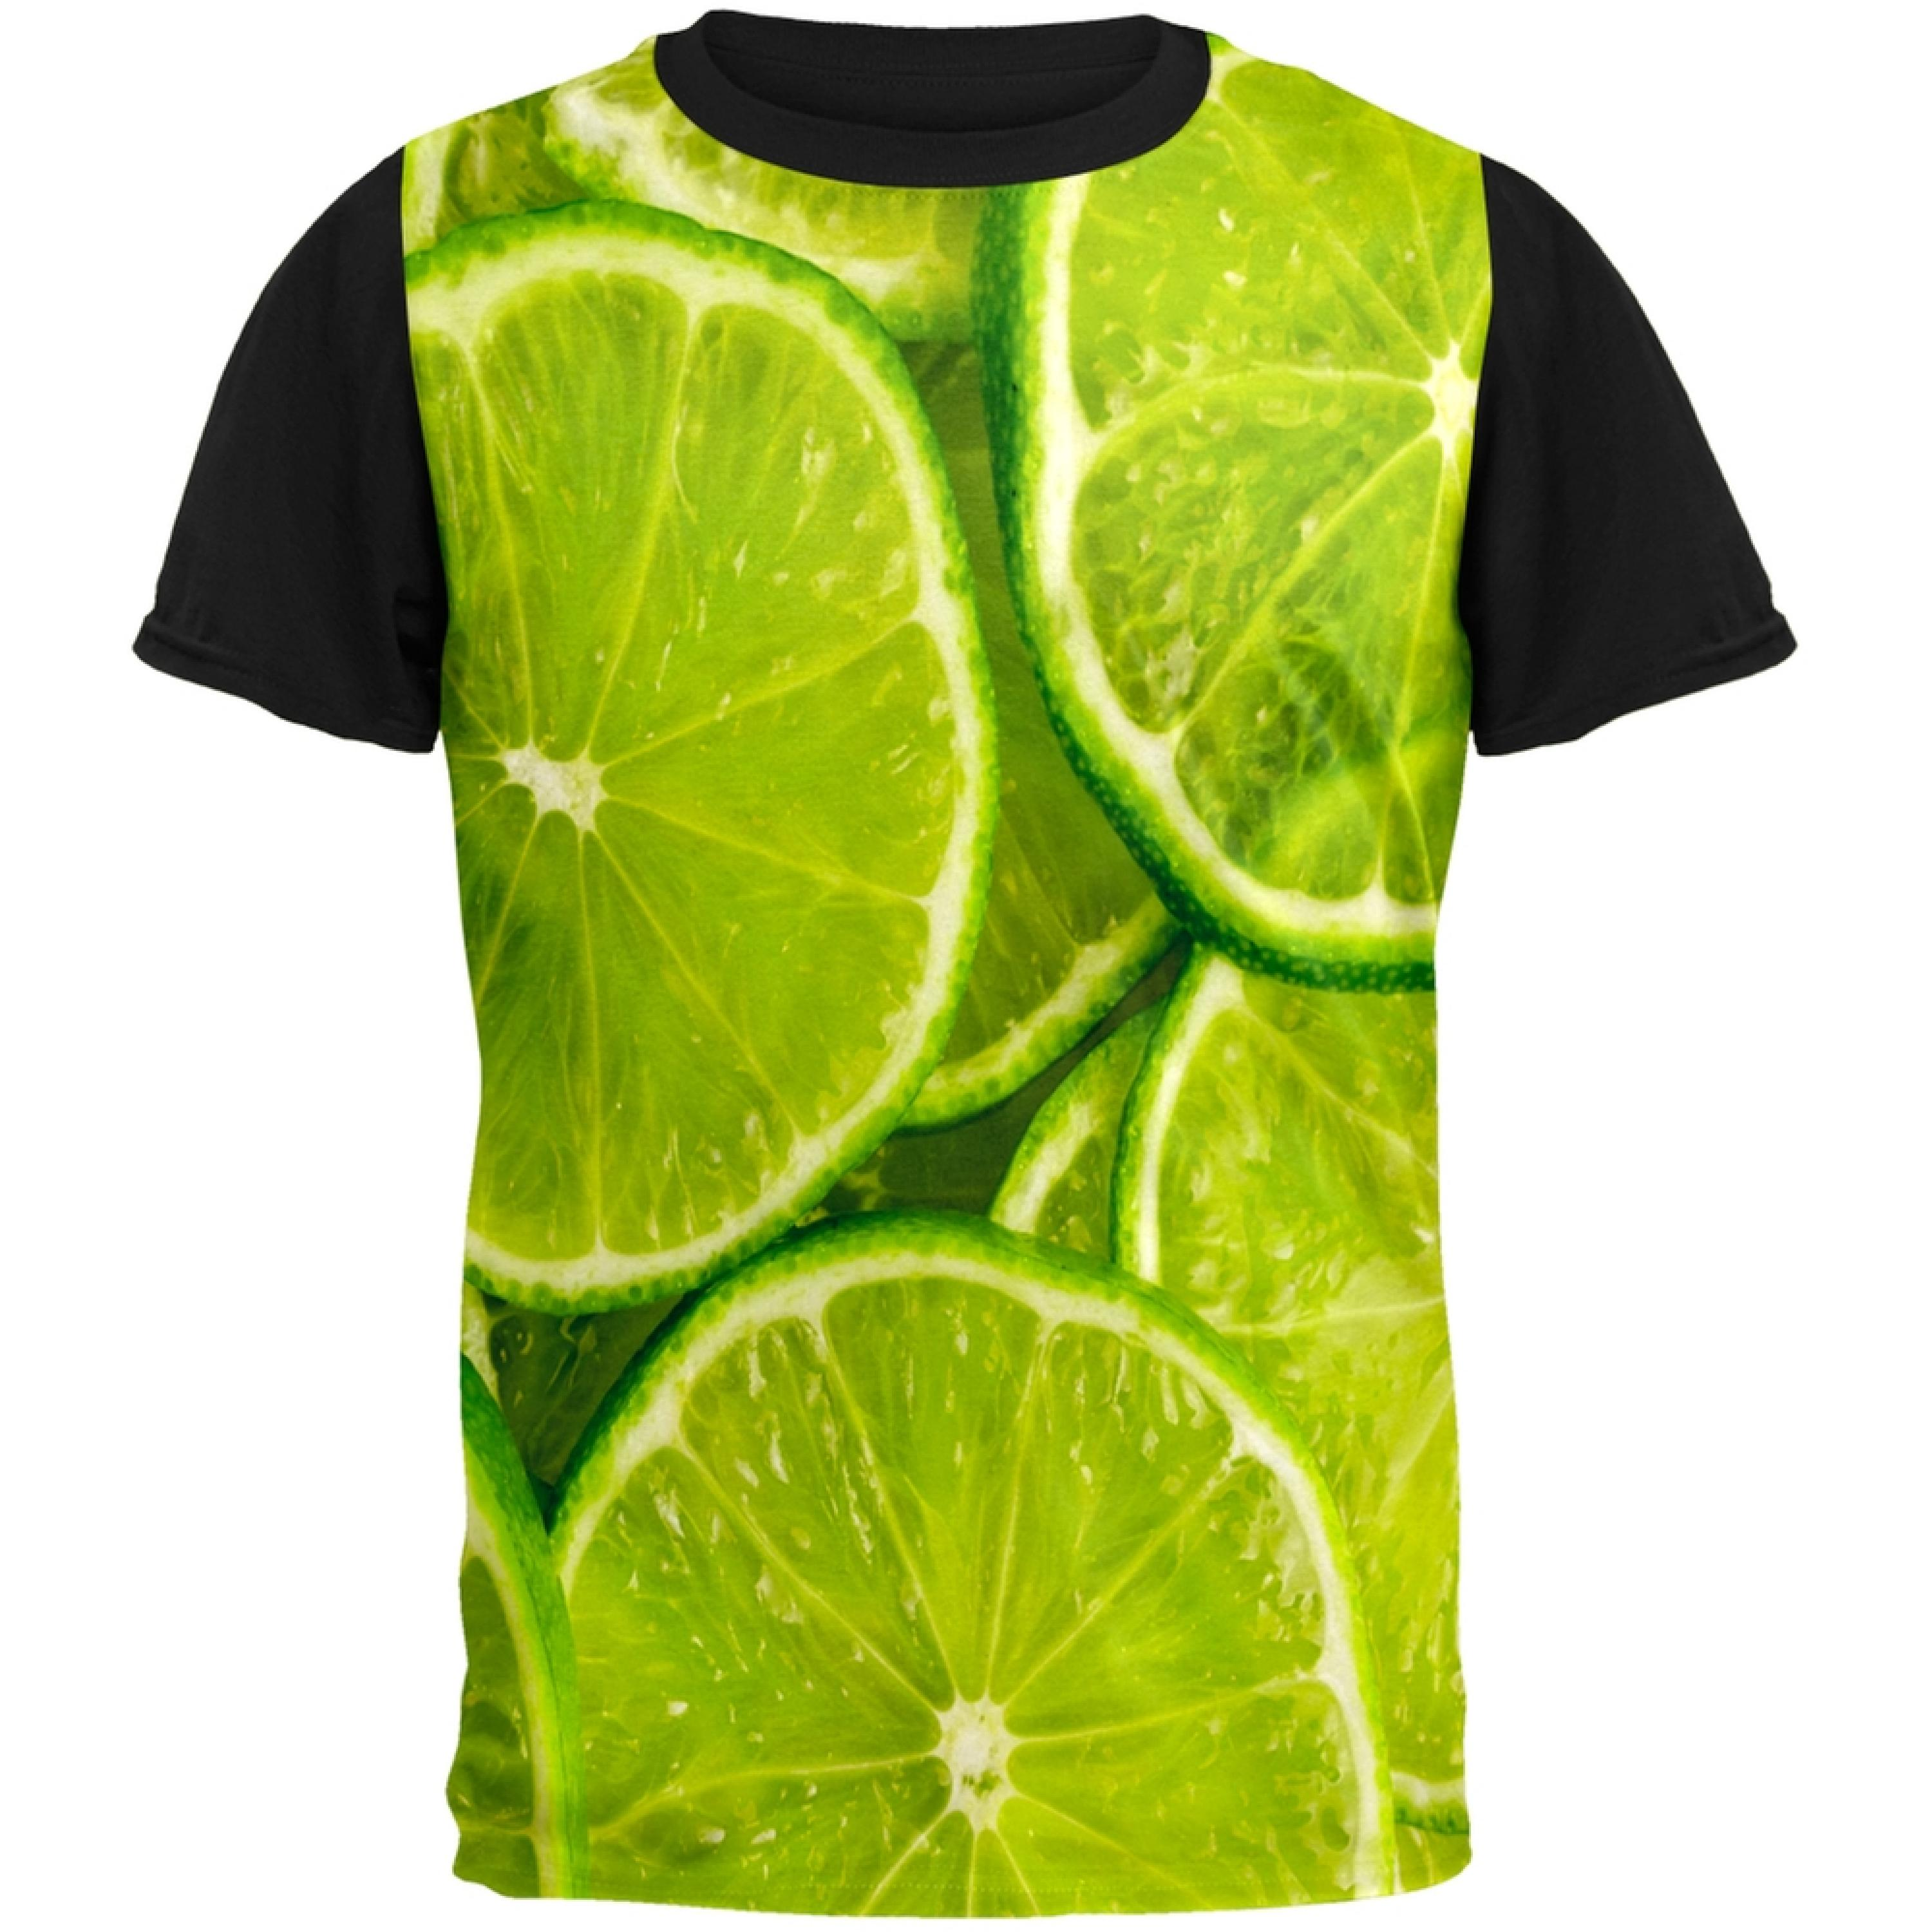 Lime Limes Citrus Adult Black Back T-Shirt